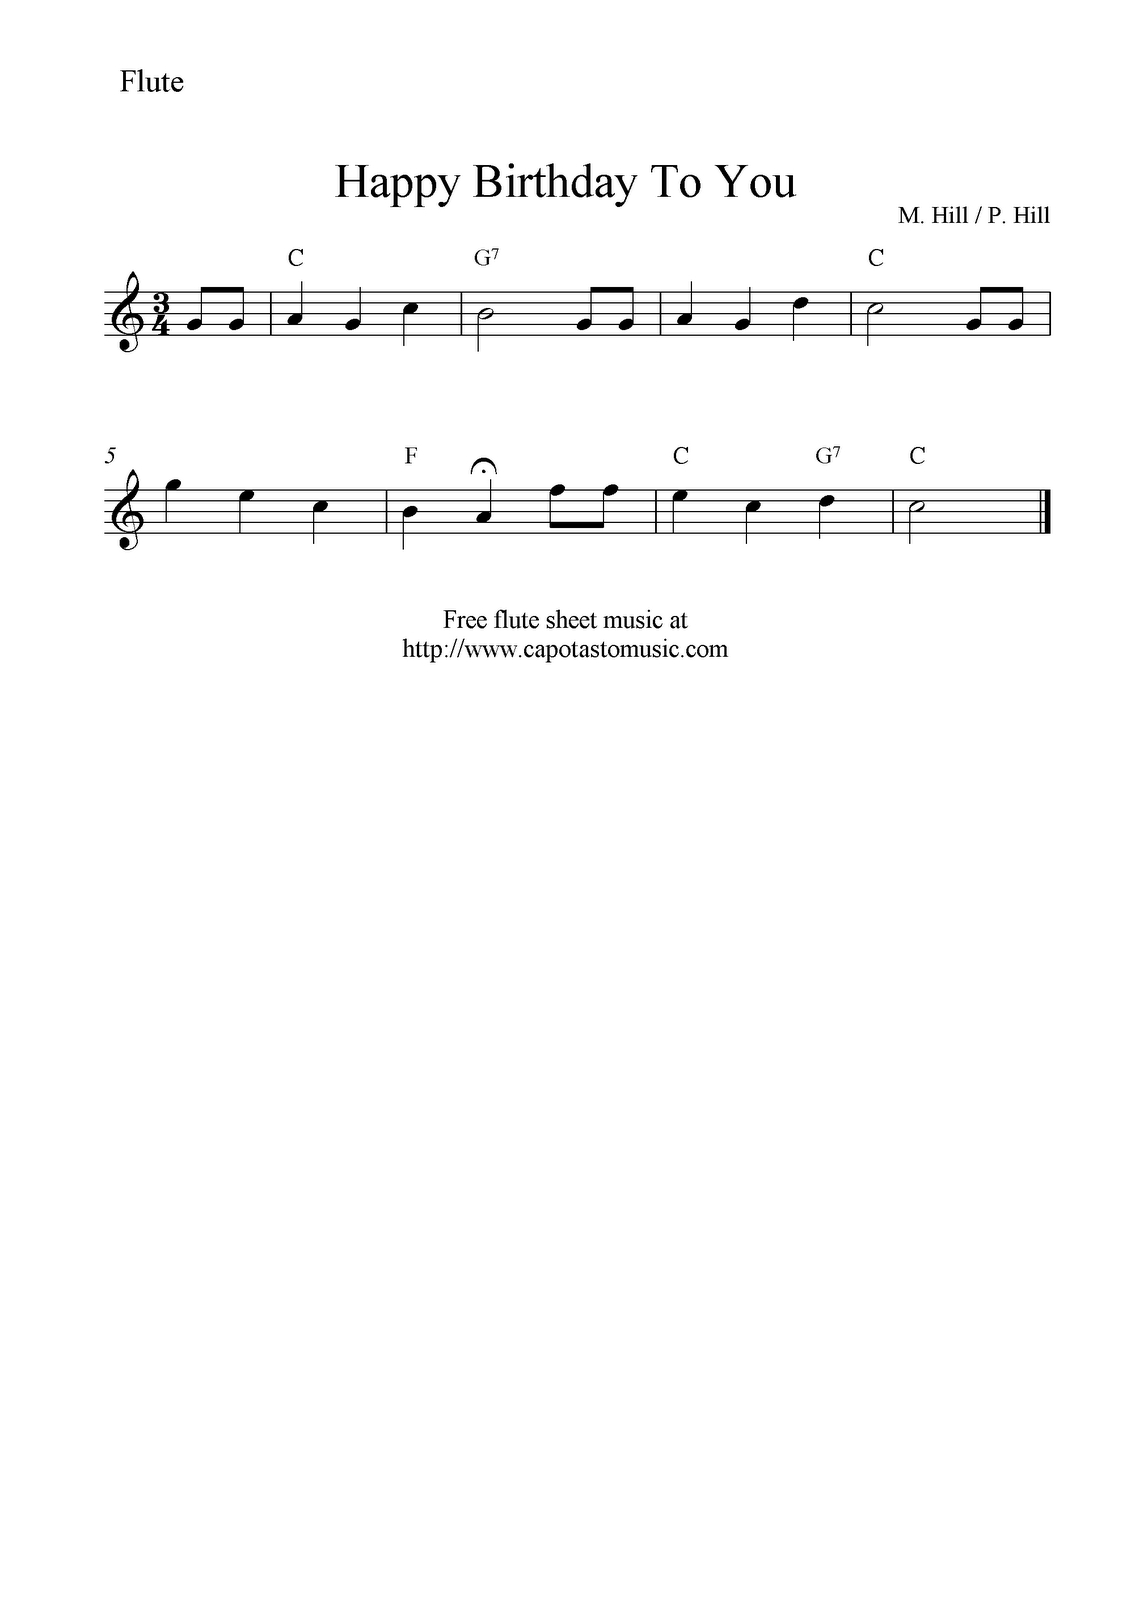 Free Sheet Music Scores: Happy Birthday To You, Free Flute Sheet - Free Printable Flute Music